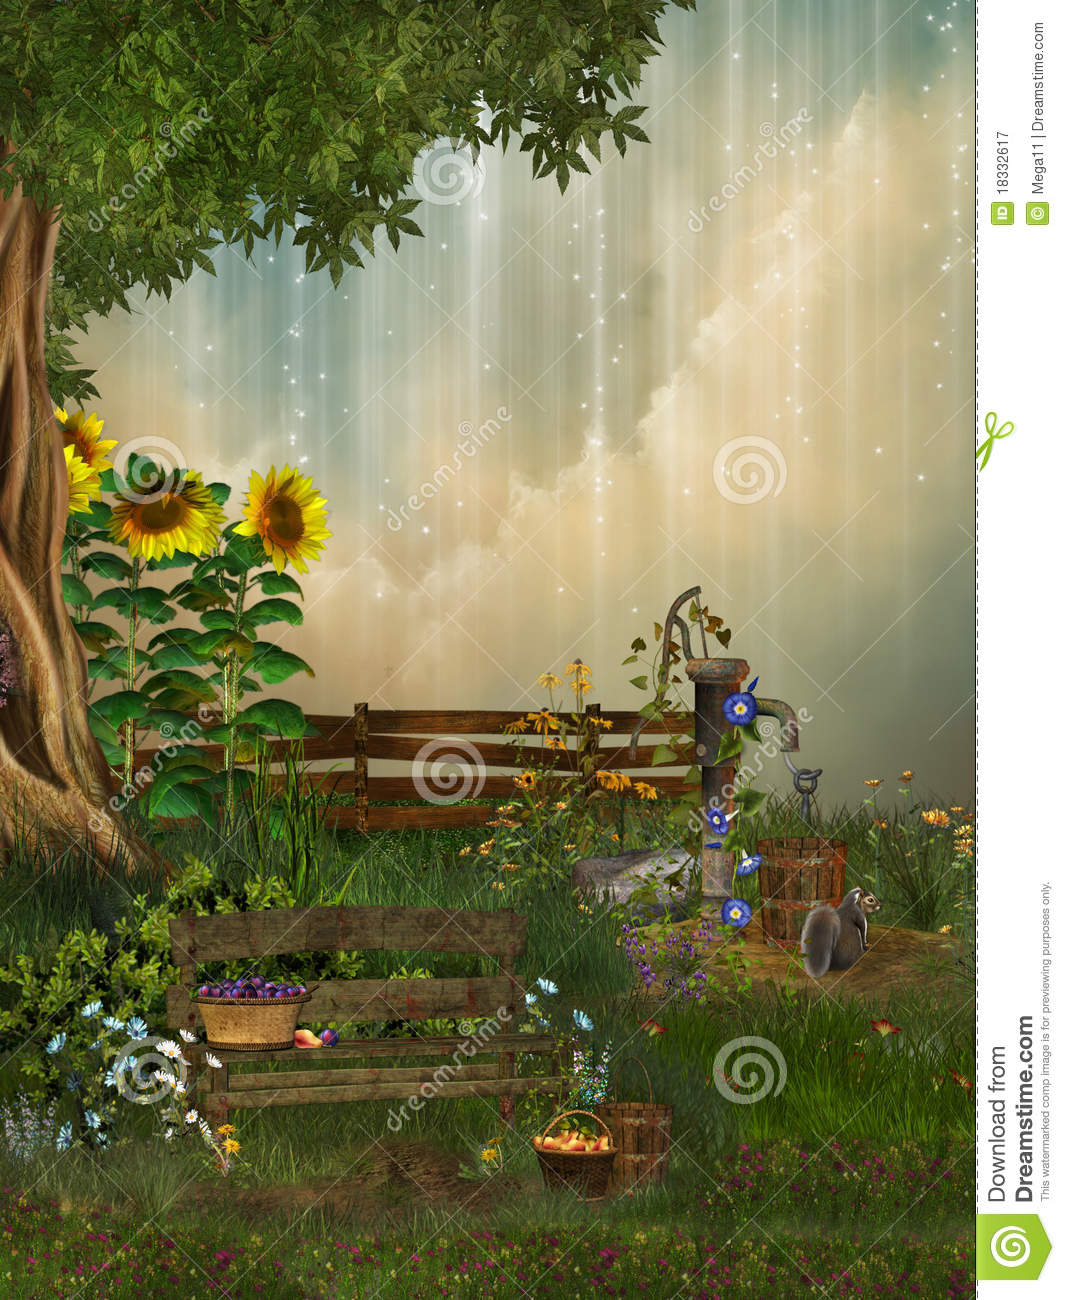 Fantasy Garden Royalty Free Stock Photography Image